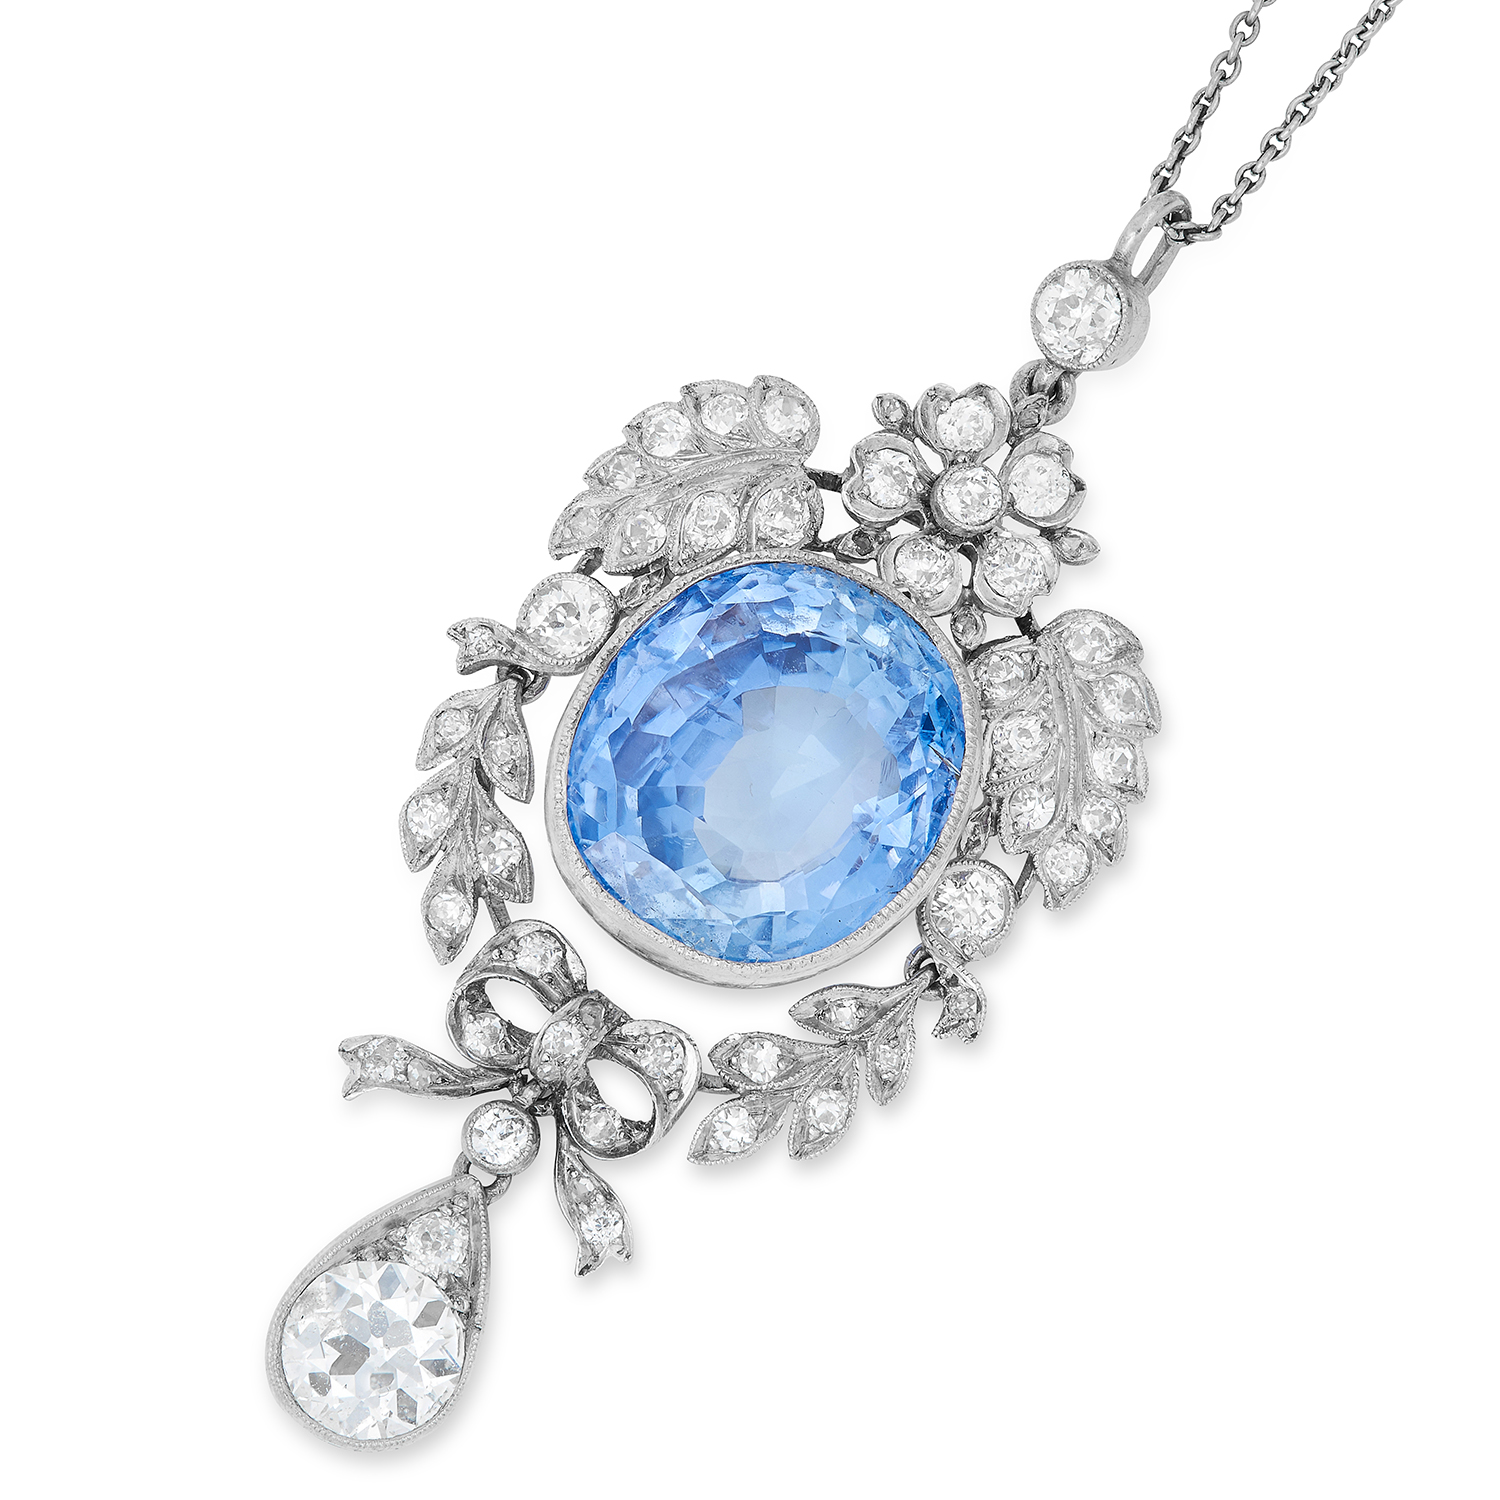 ANTIQUE CEYLON NO HEAT SAPPHIRE AND DIAMOND PENDANT, set with an oval cut sapphire of 18.58 carats